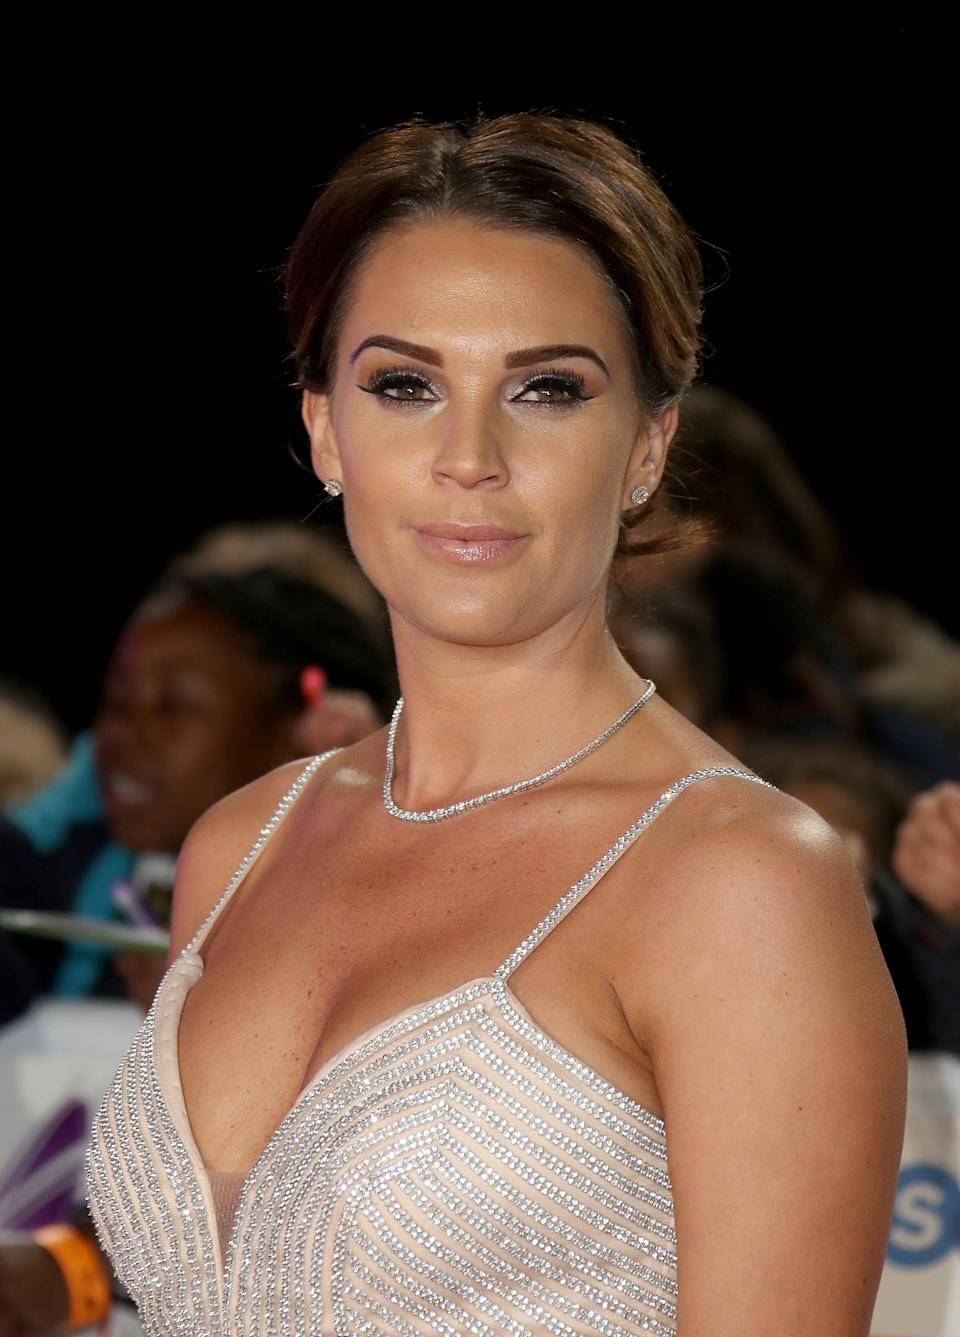 LONDON, ENGLAND - OCTOBER 29:  Danielle Lloyd attends the Pride of Britain Awards 2018 at The Grosvenor House Hotel on October 29, 2018 in London, England.  (Photo by Mike Marsland/Mike Marsland/WireImage)